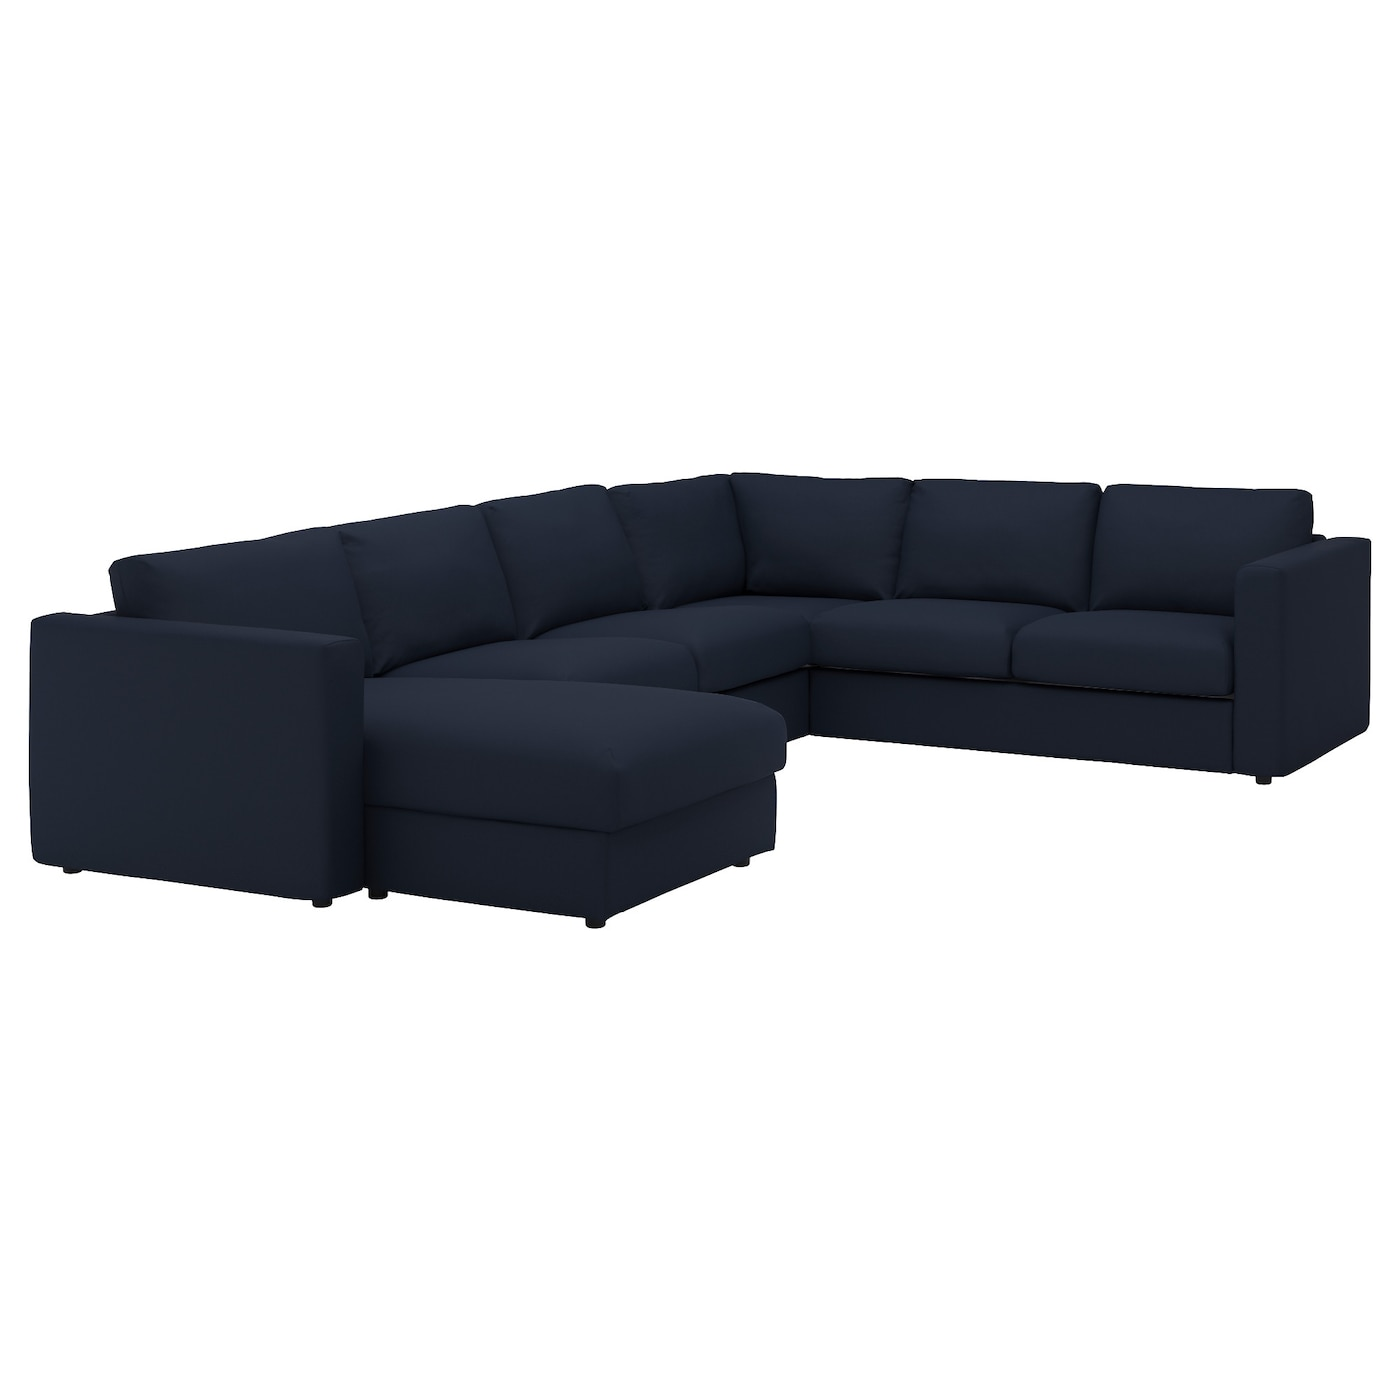 vimle corner sofa 5 seat with chaise longue gr sbo black